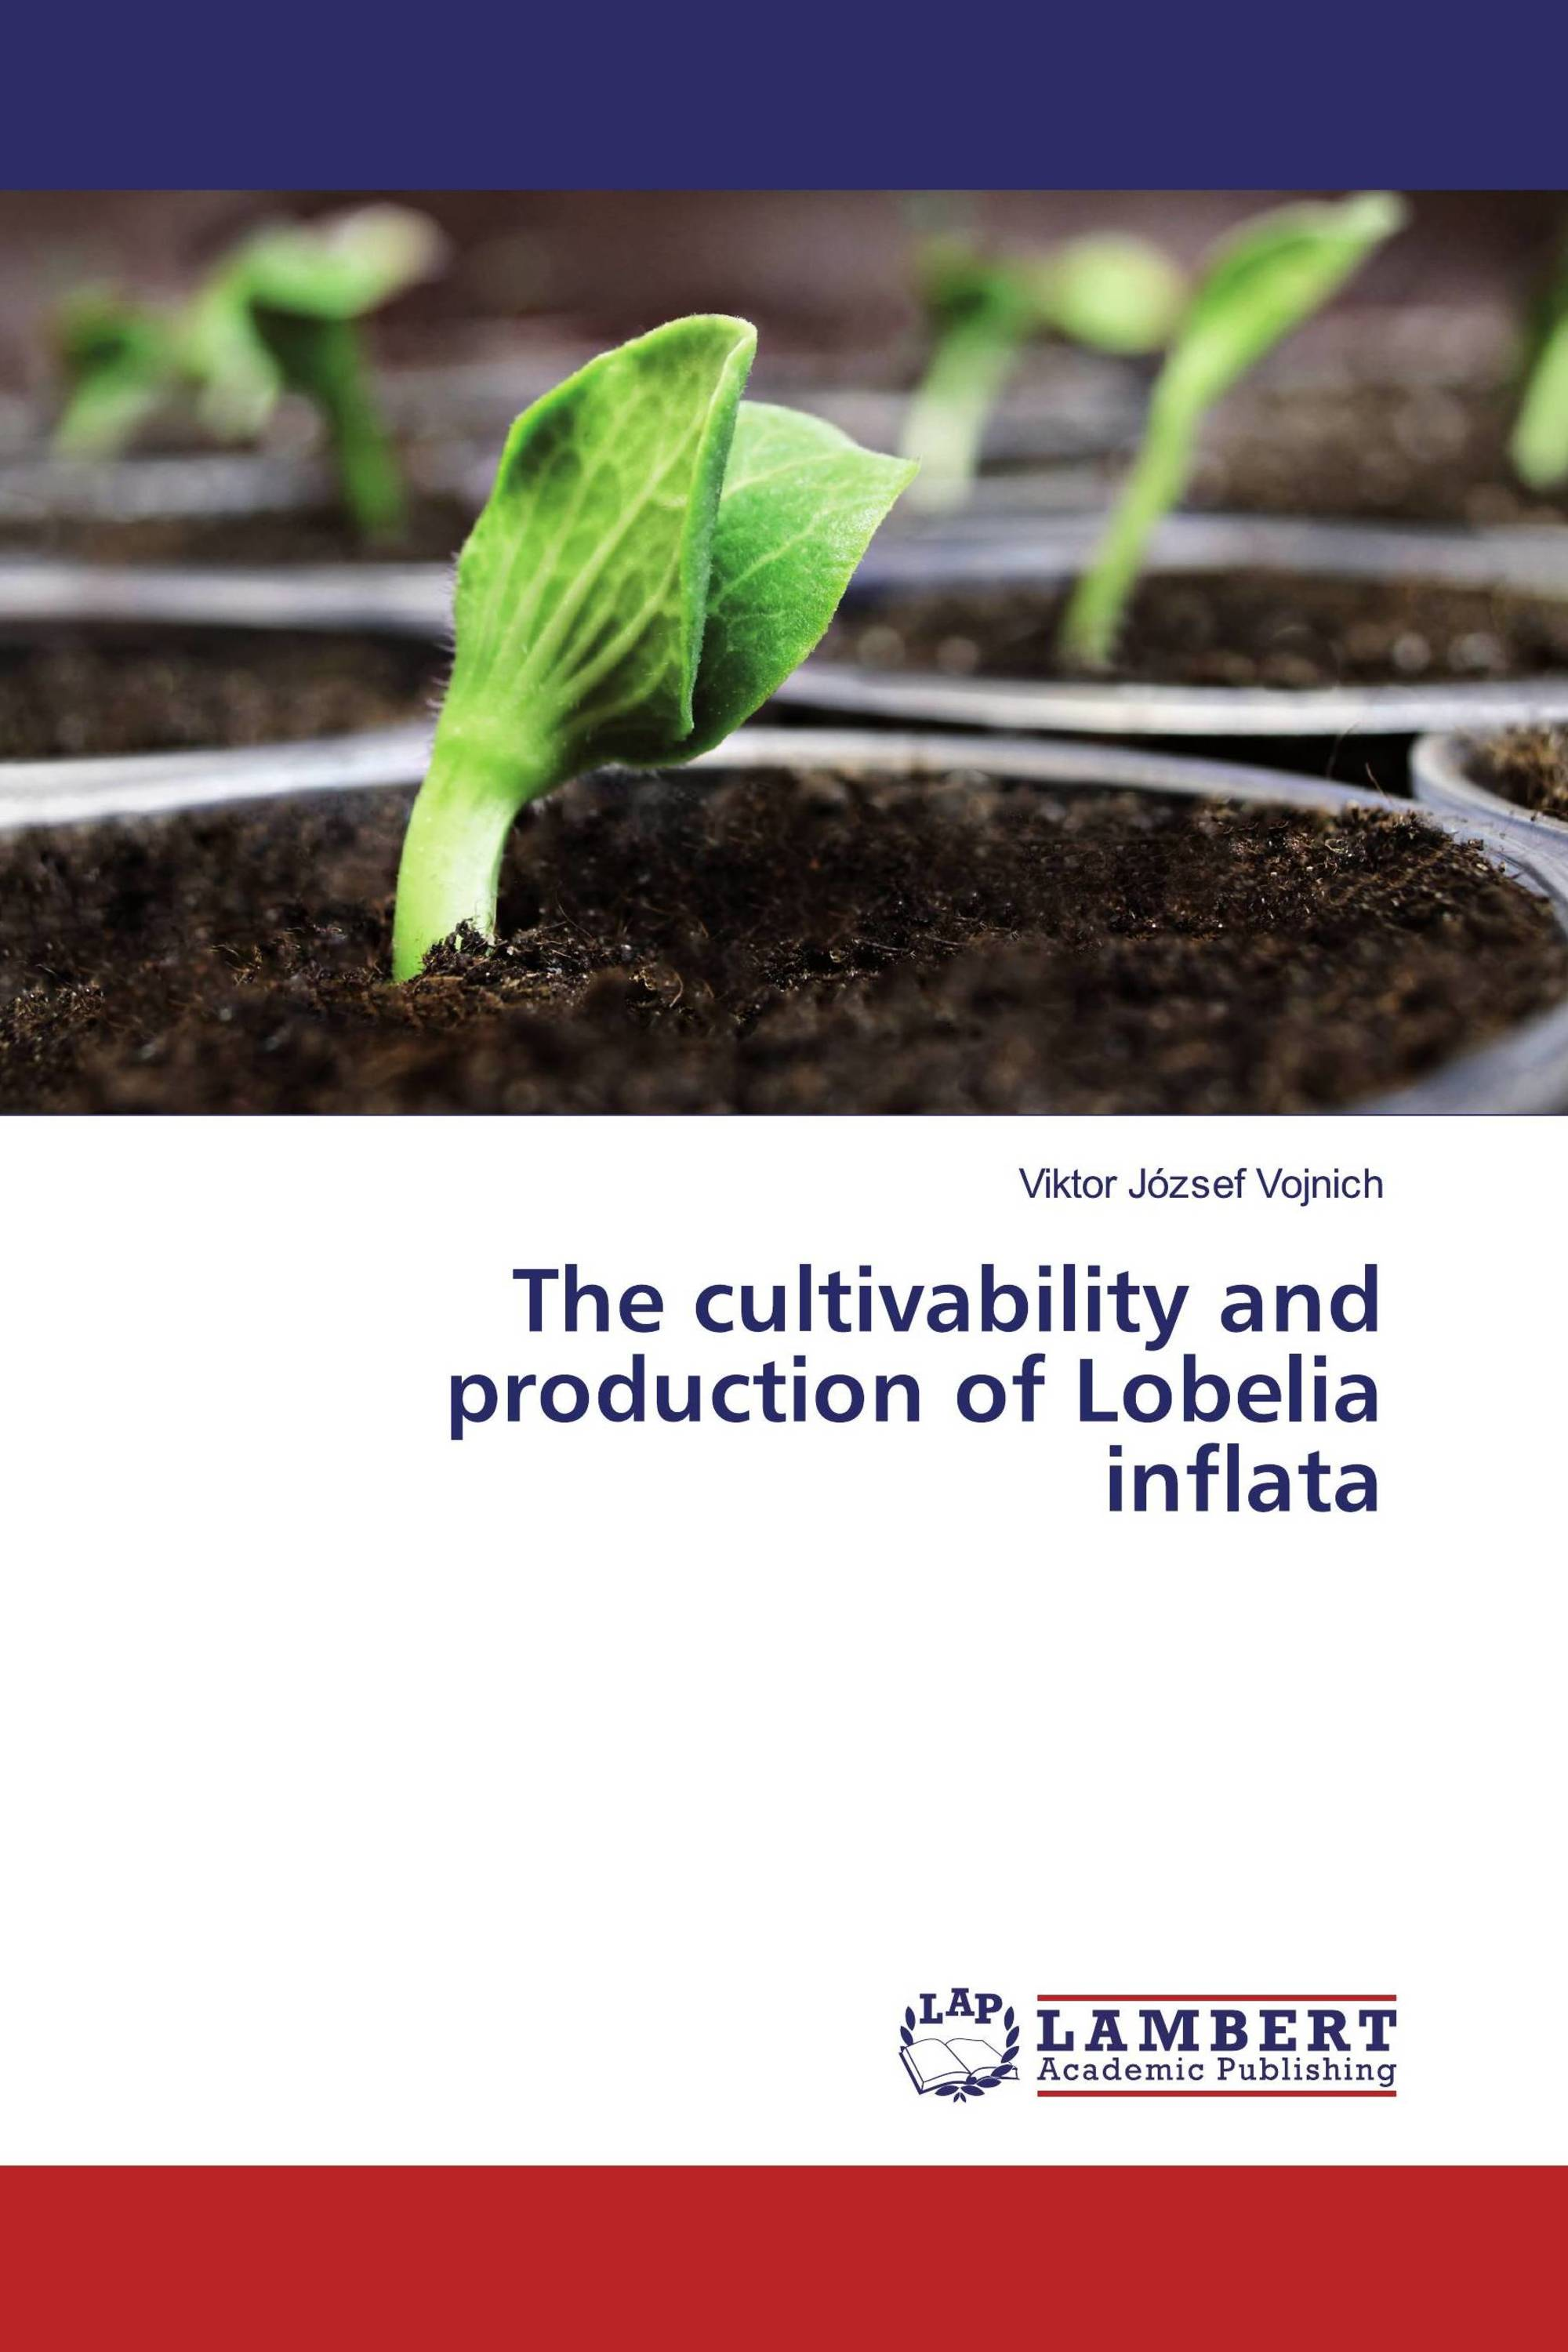 The cultivability and production of Lobelia inflata